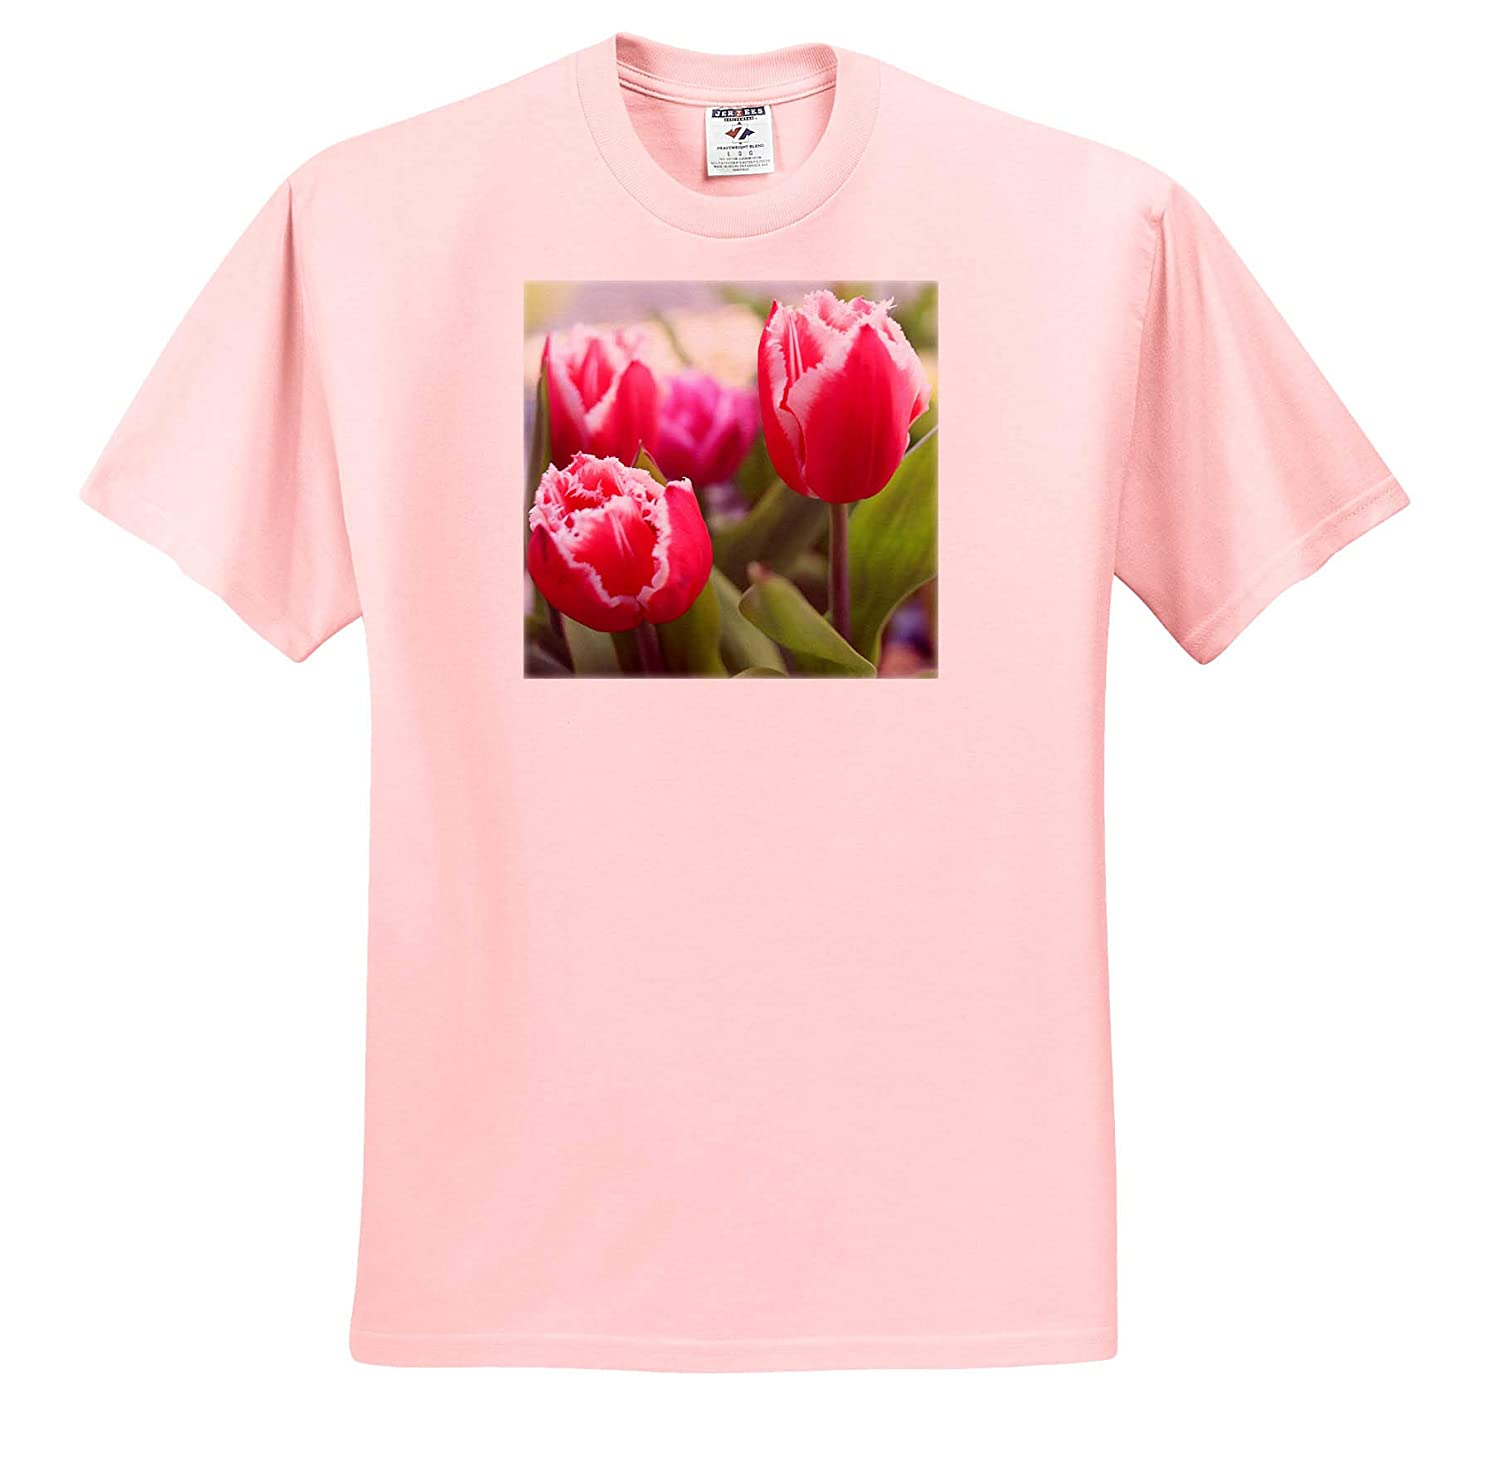 - T-Shirts Flowers 3dRose Stamp City Pink Tulips with Jagged Edges That Adorn one of Our Flower Gardens